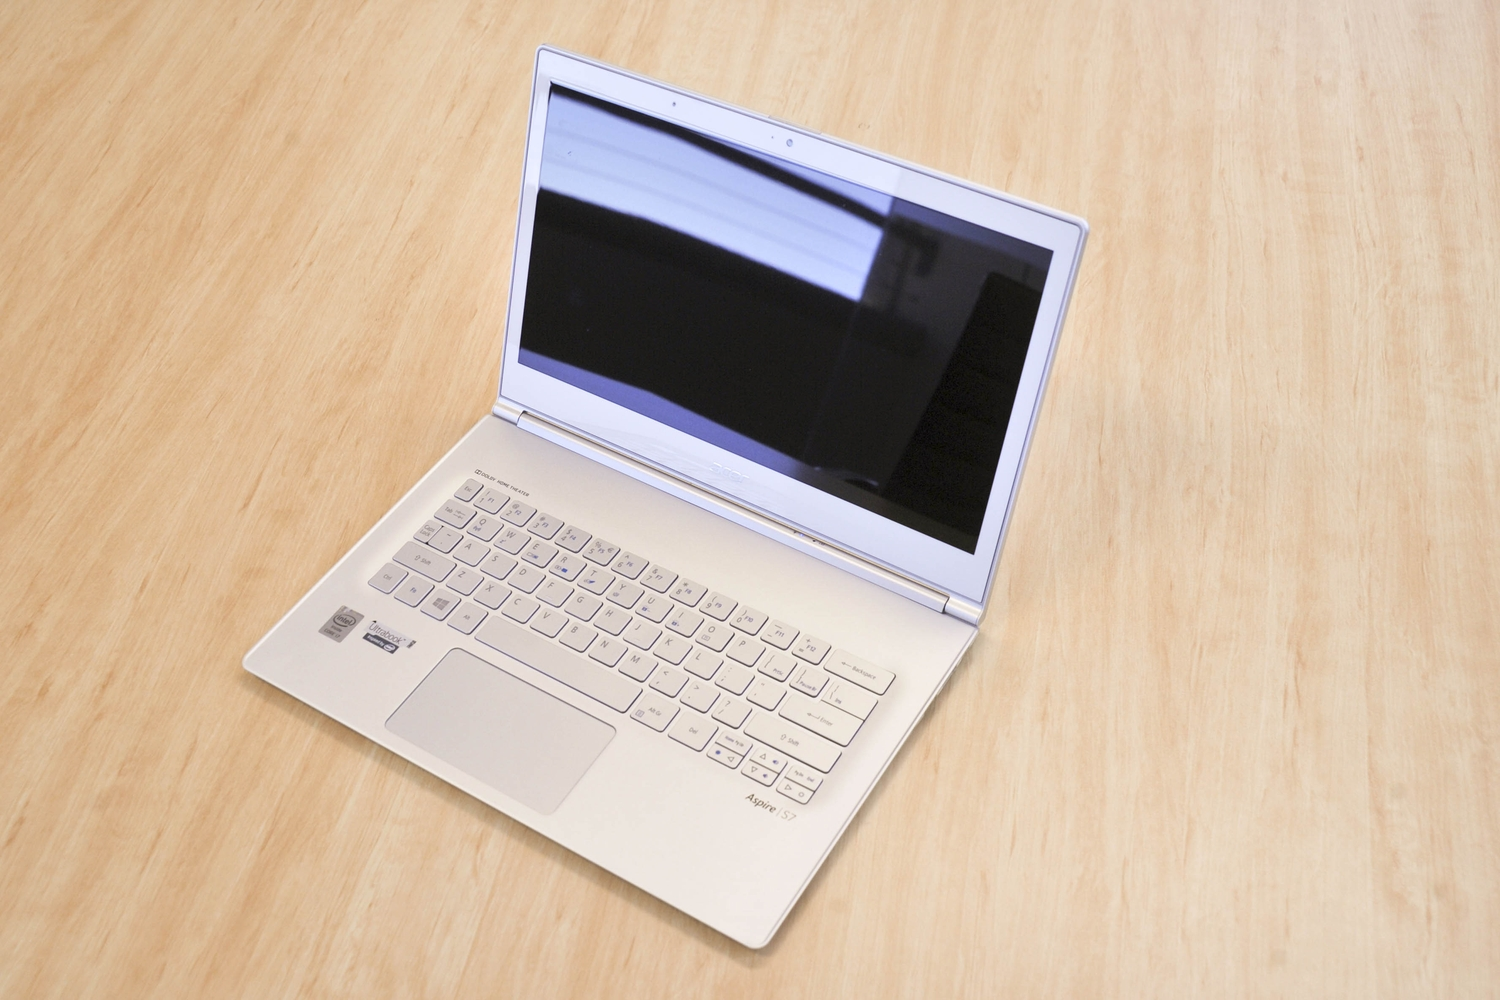 Acer Aspire S7-392 Ultrabook Review: Acer's Aspire S7 gets ...